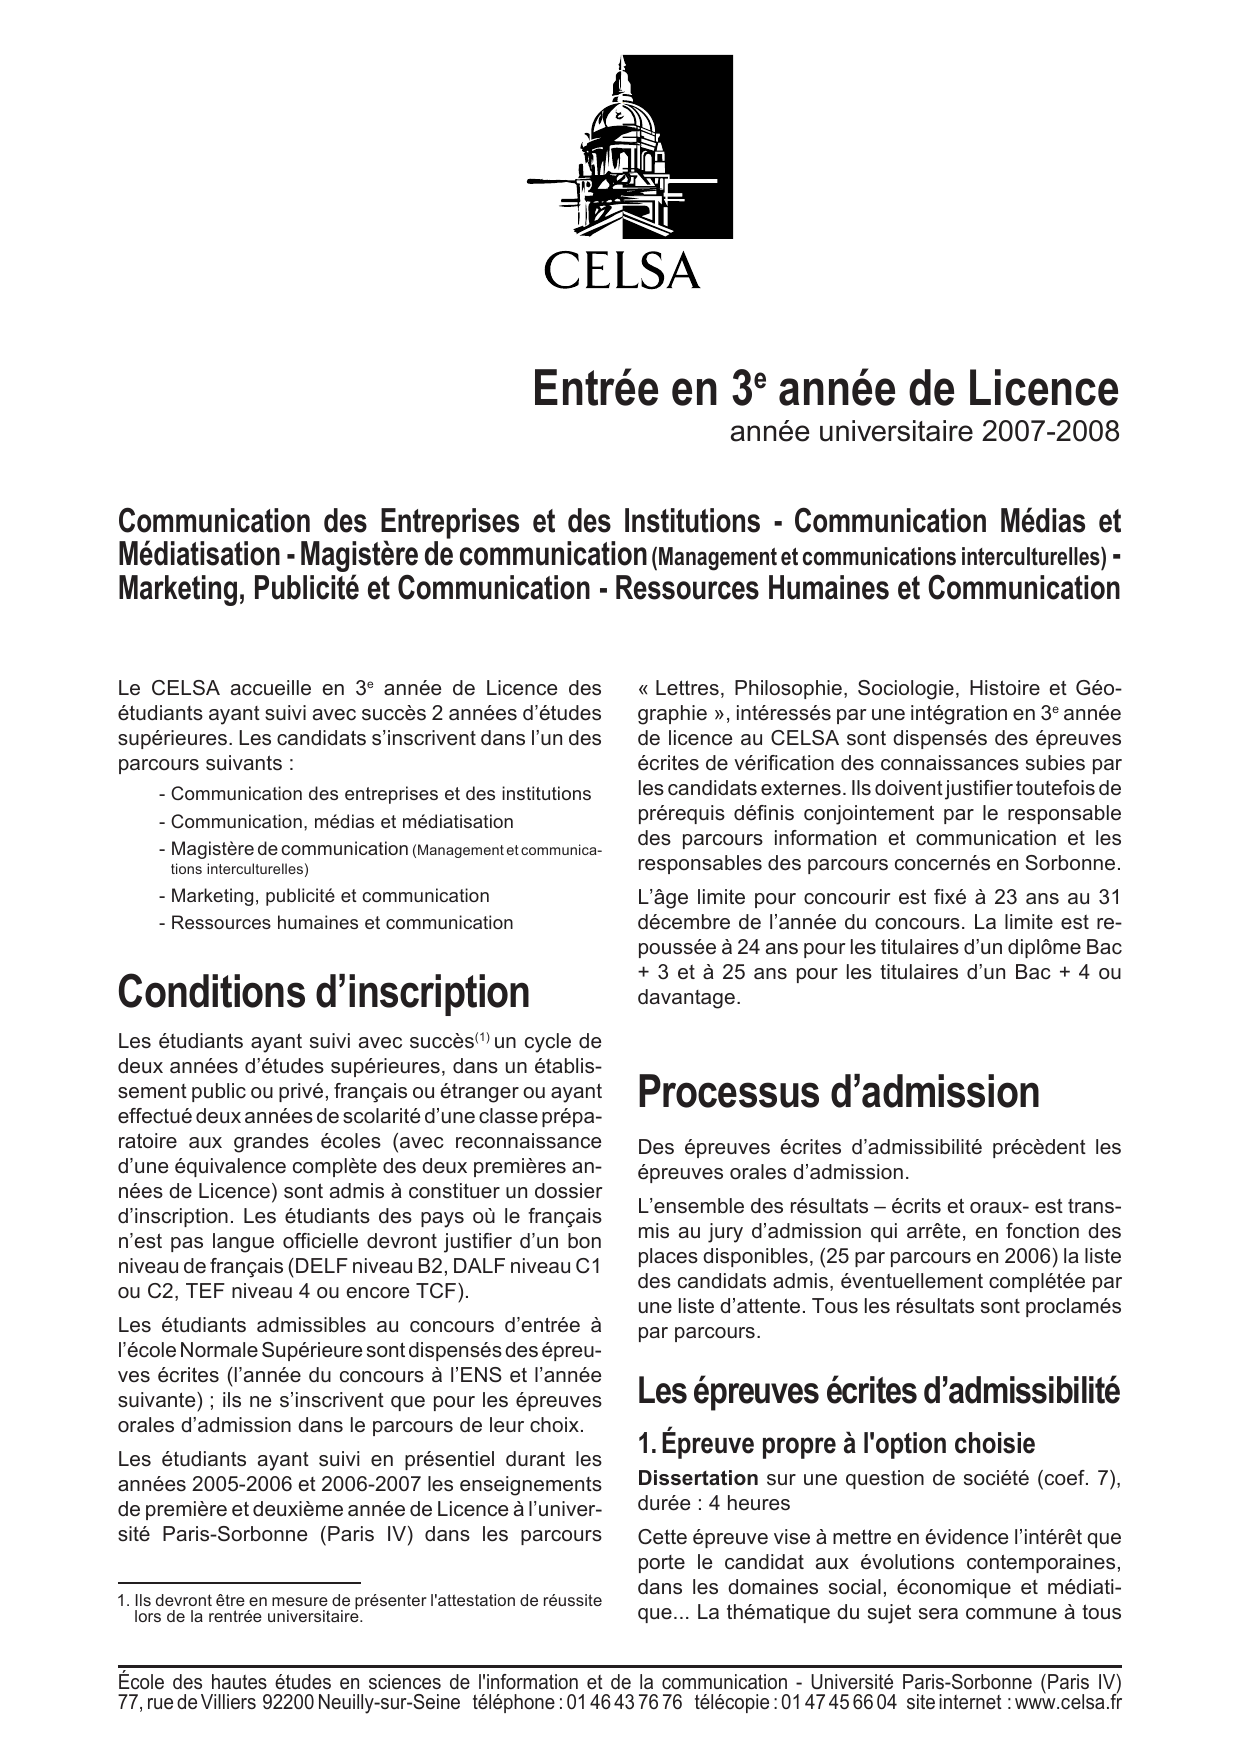 exemple dissertation celsa